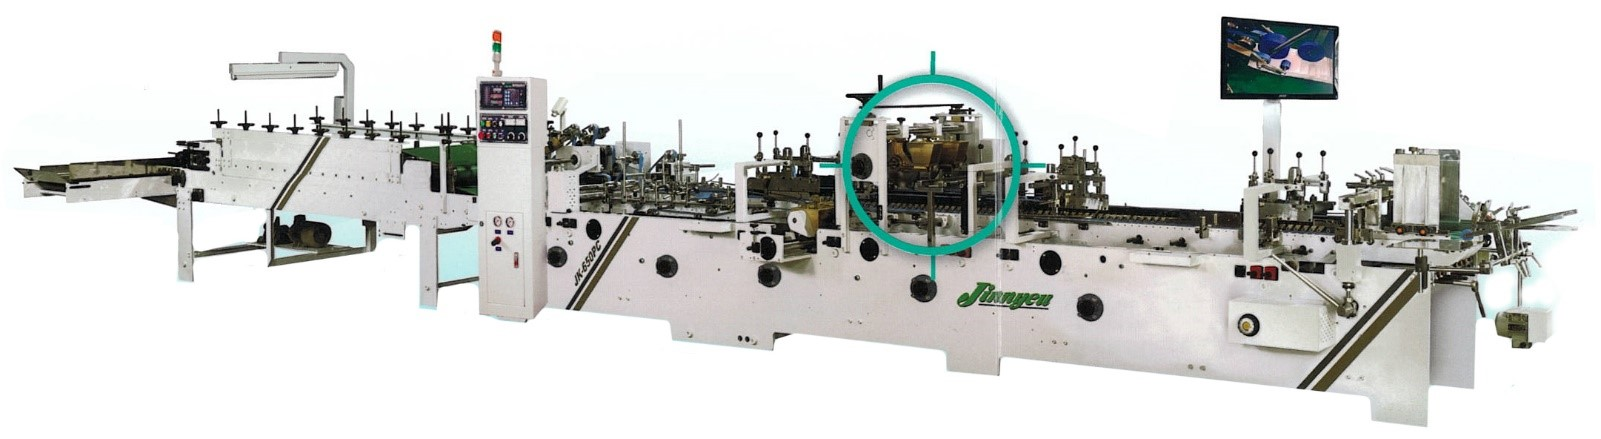 JK-650PC Automatic Folder Gluer Machine